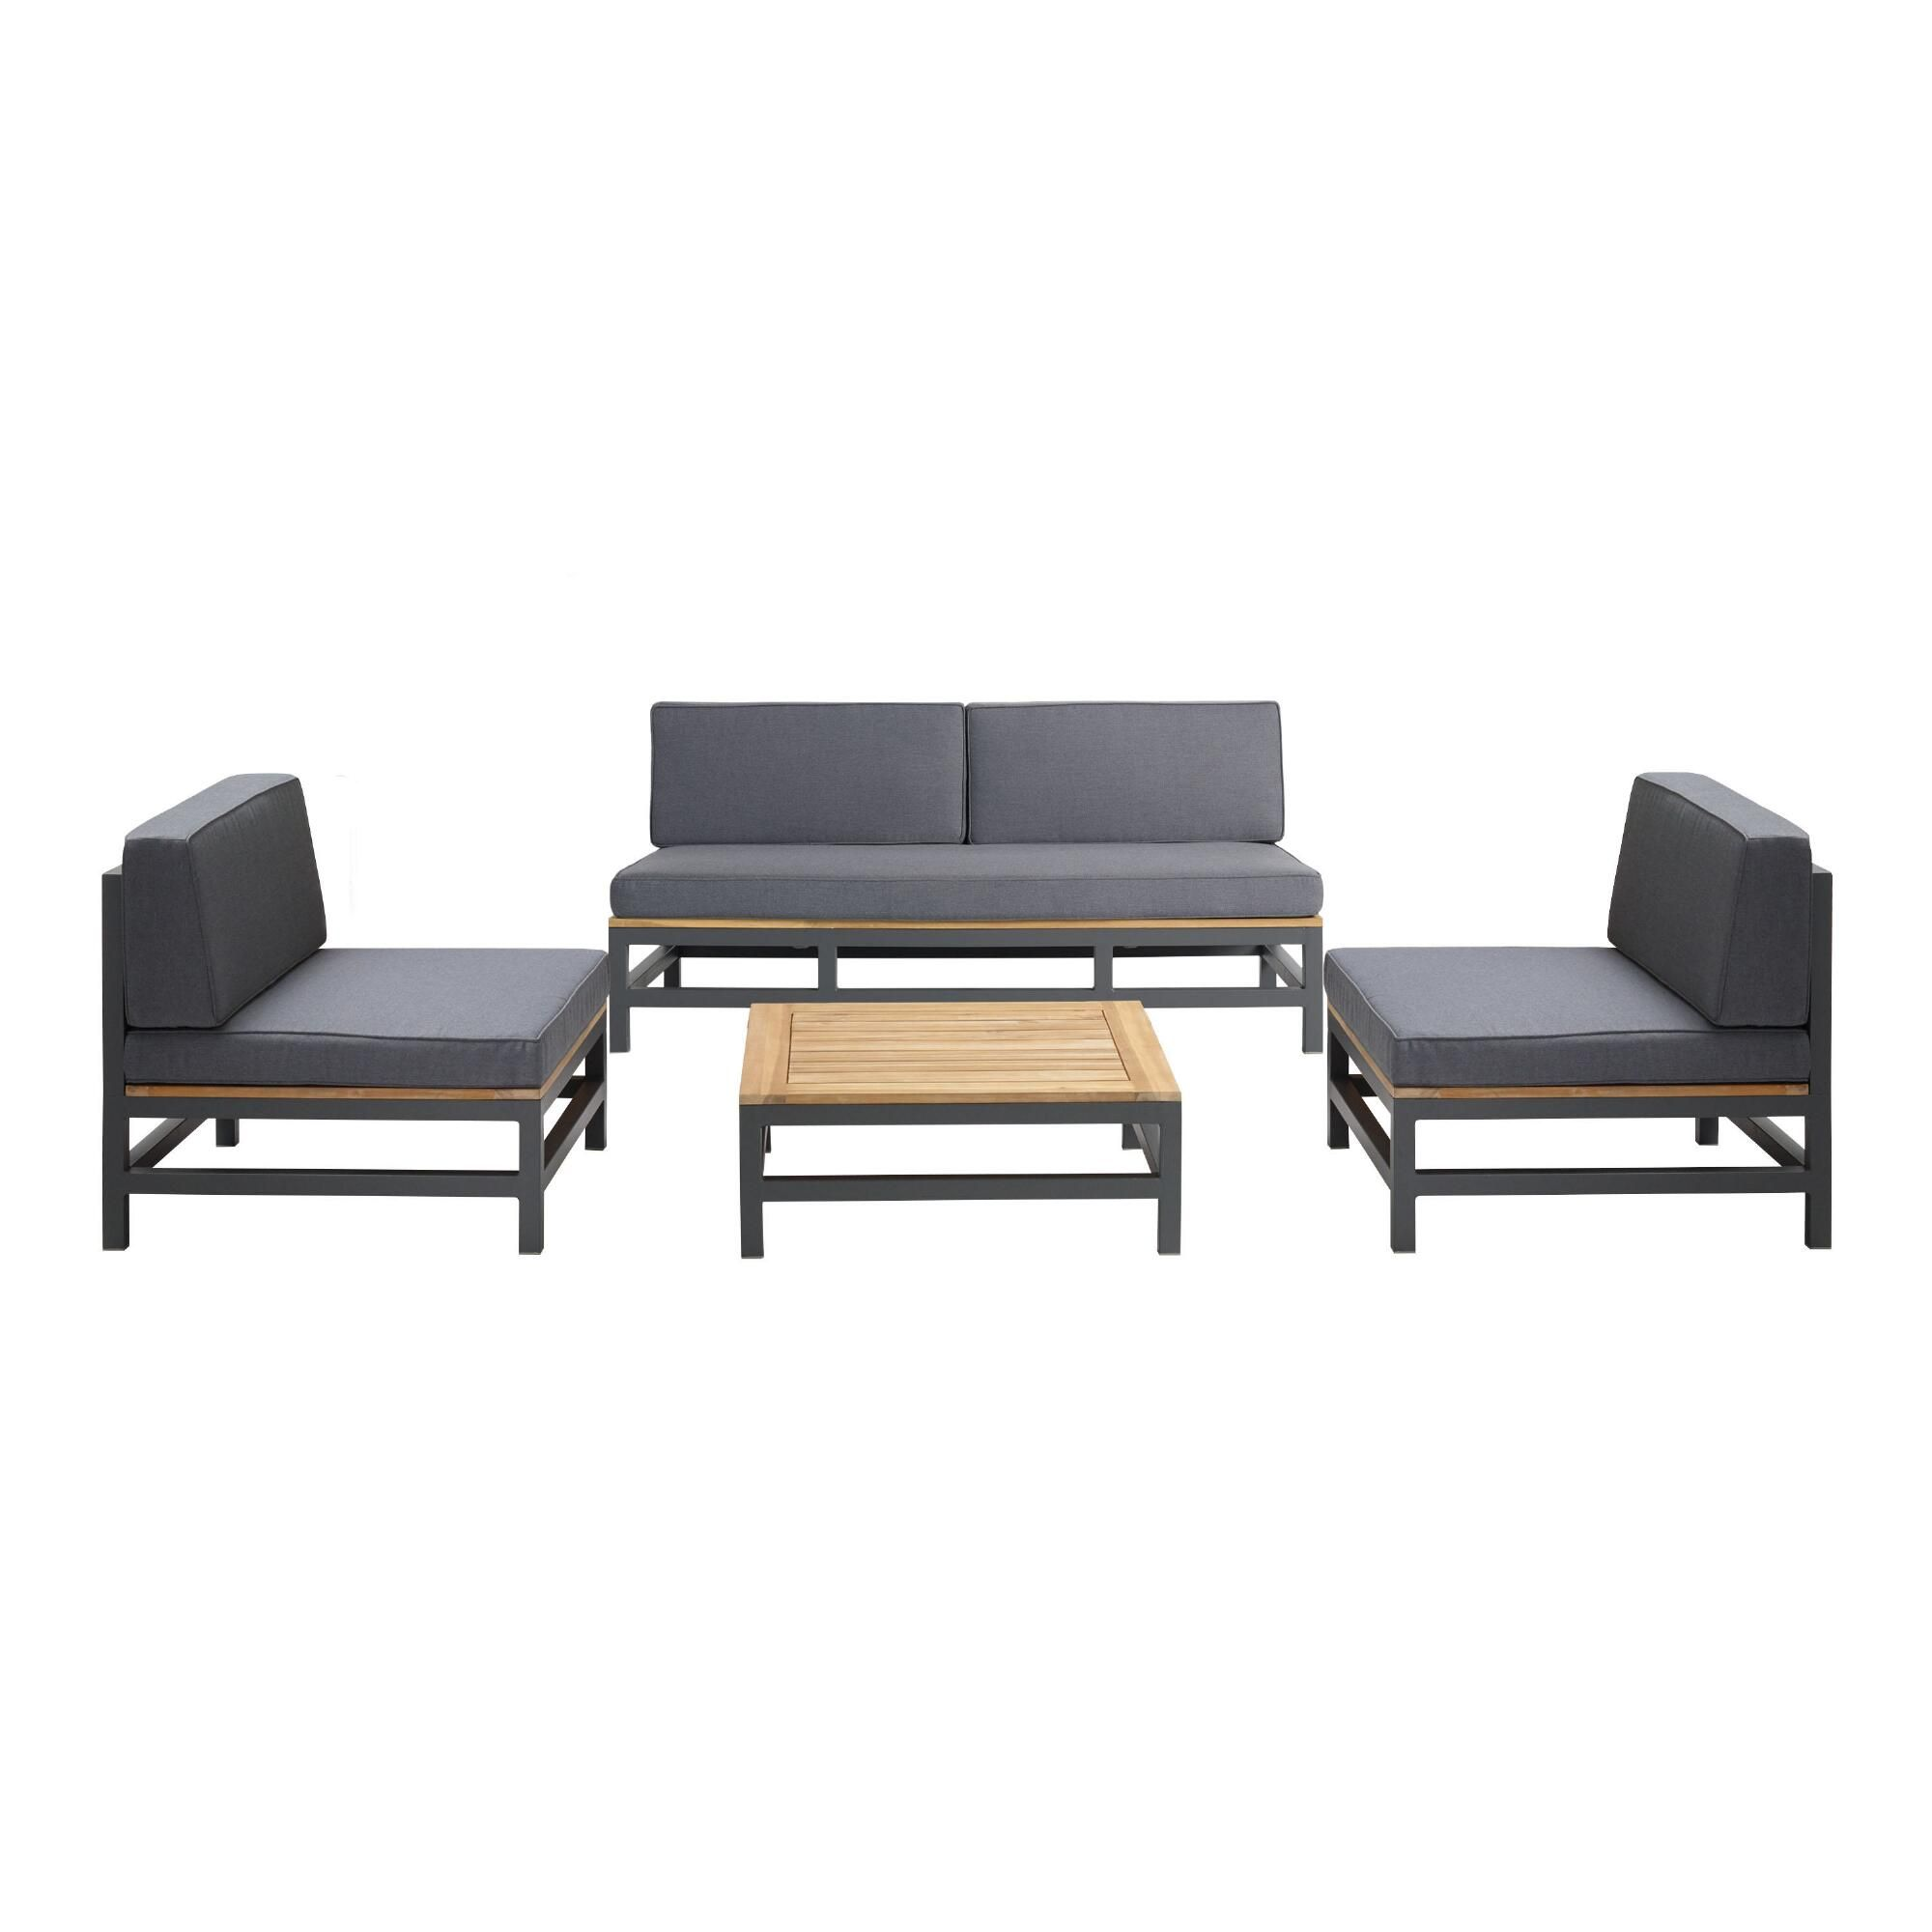 Alicante 4 Piece Outdoor Occasional Set V1 In 2020 Outdoor Furniture Sets Lounge Furniture Affordable Home Decor